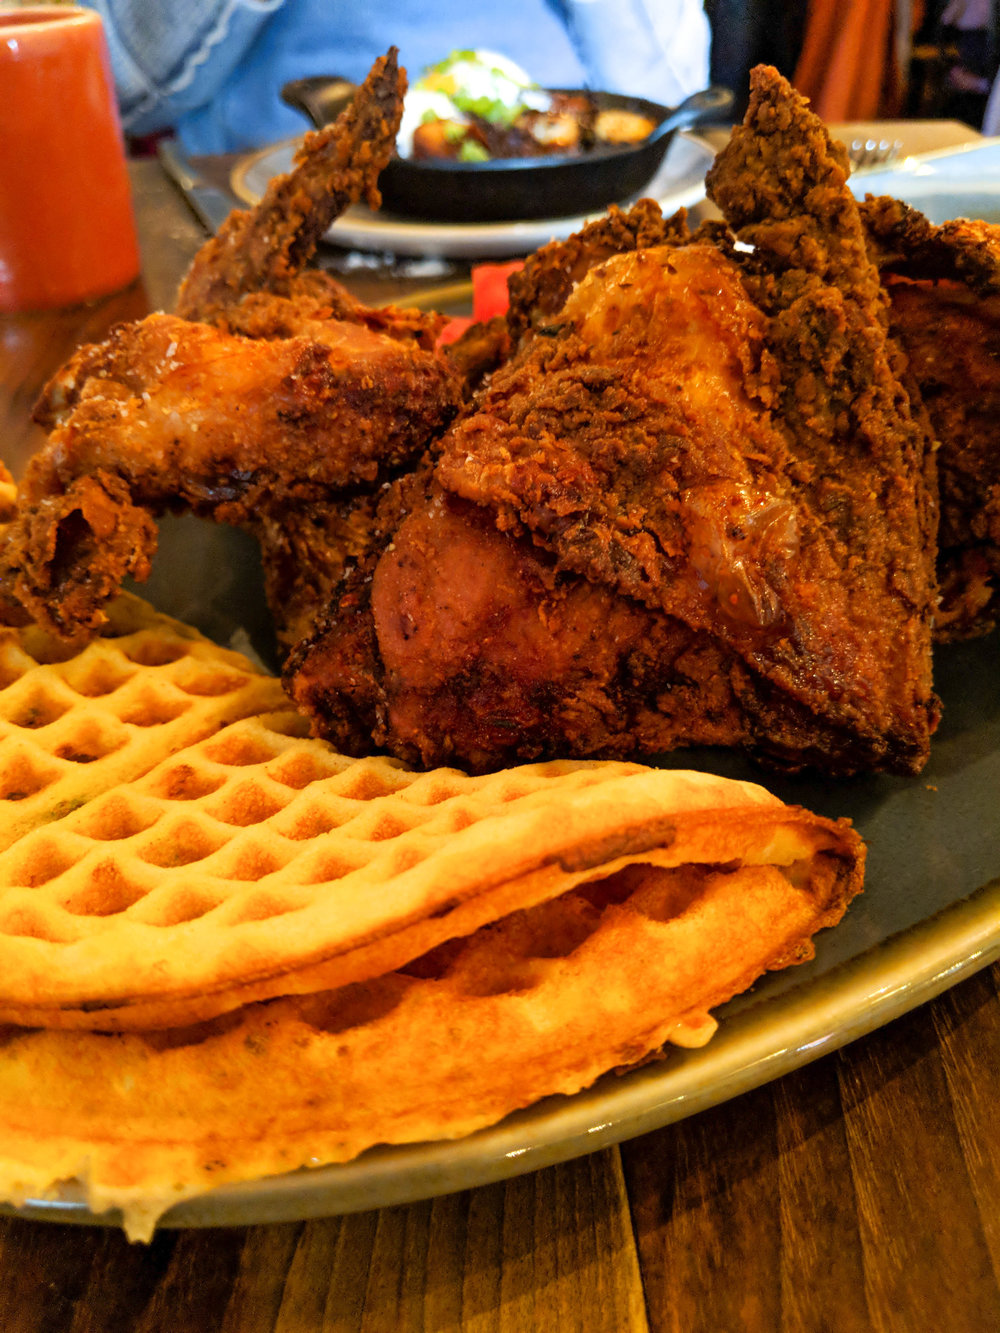 bri rinehart; buttermilk & bourbon; chicken & waffles